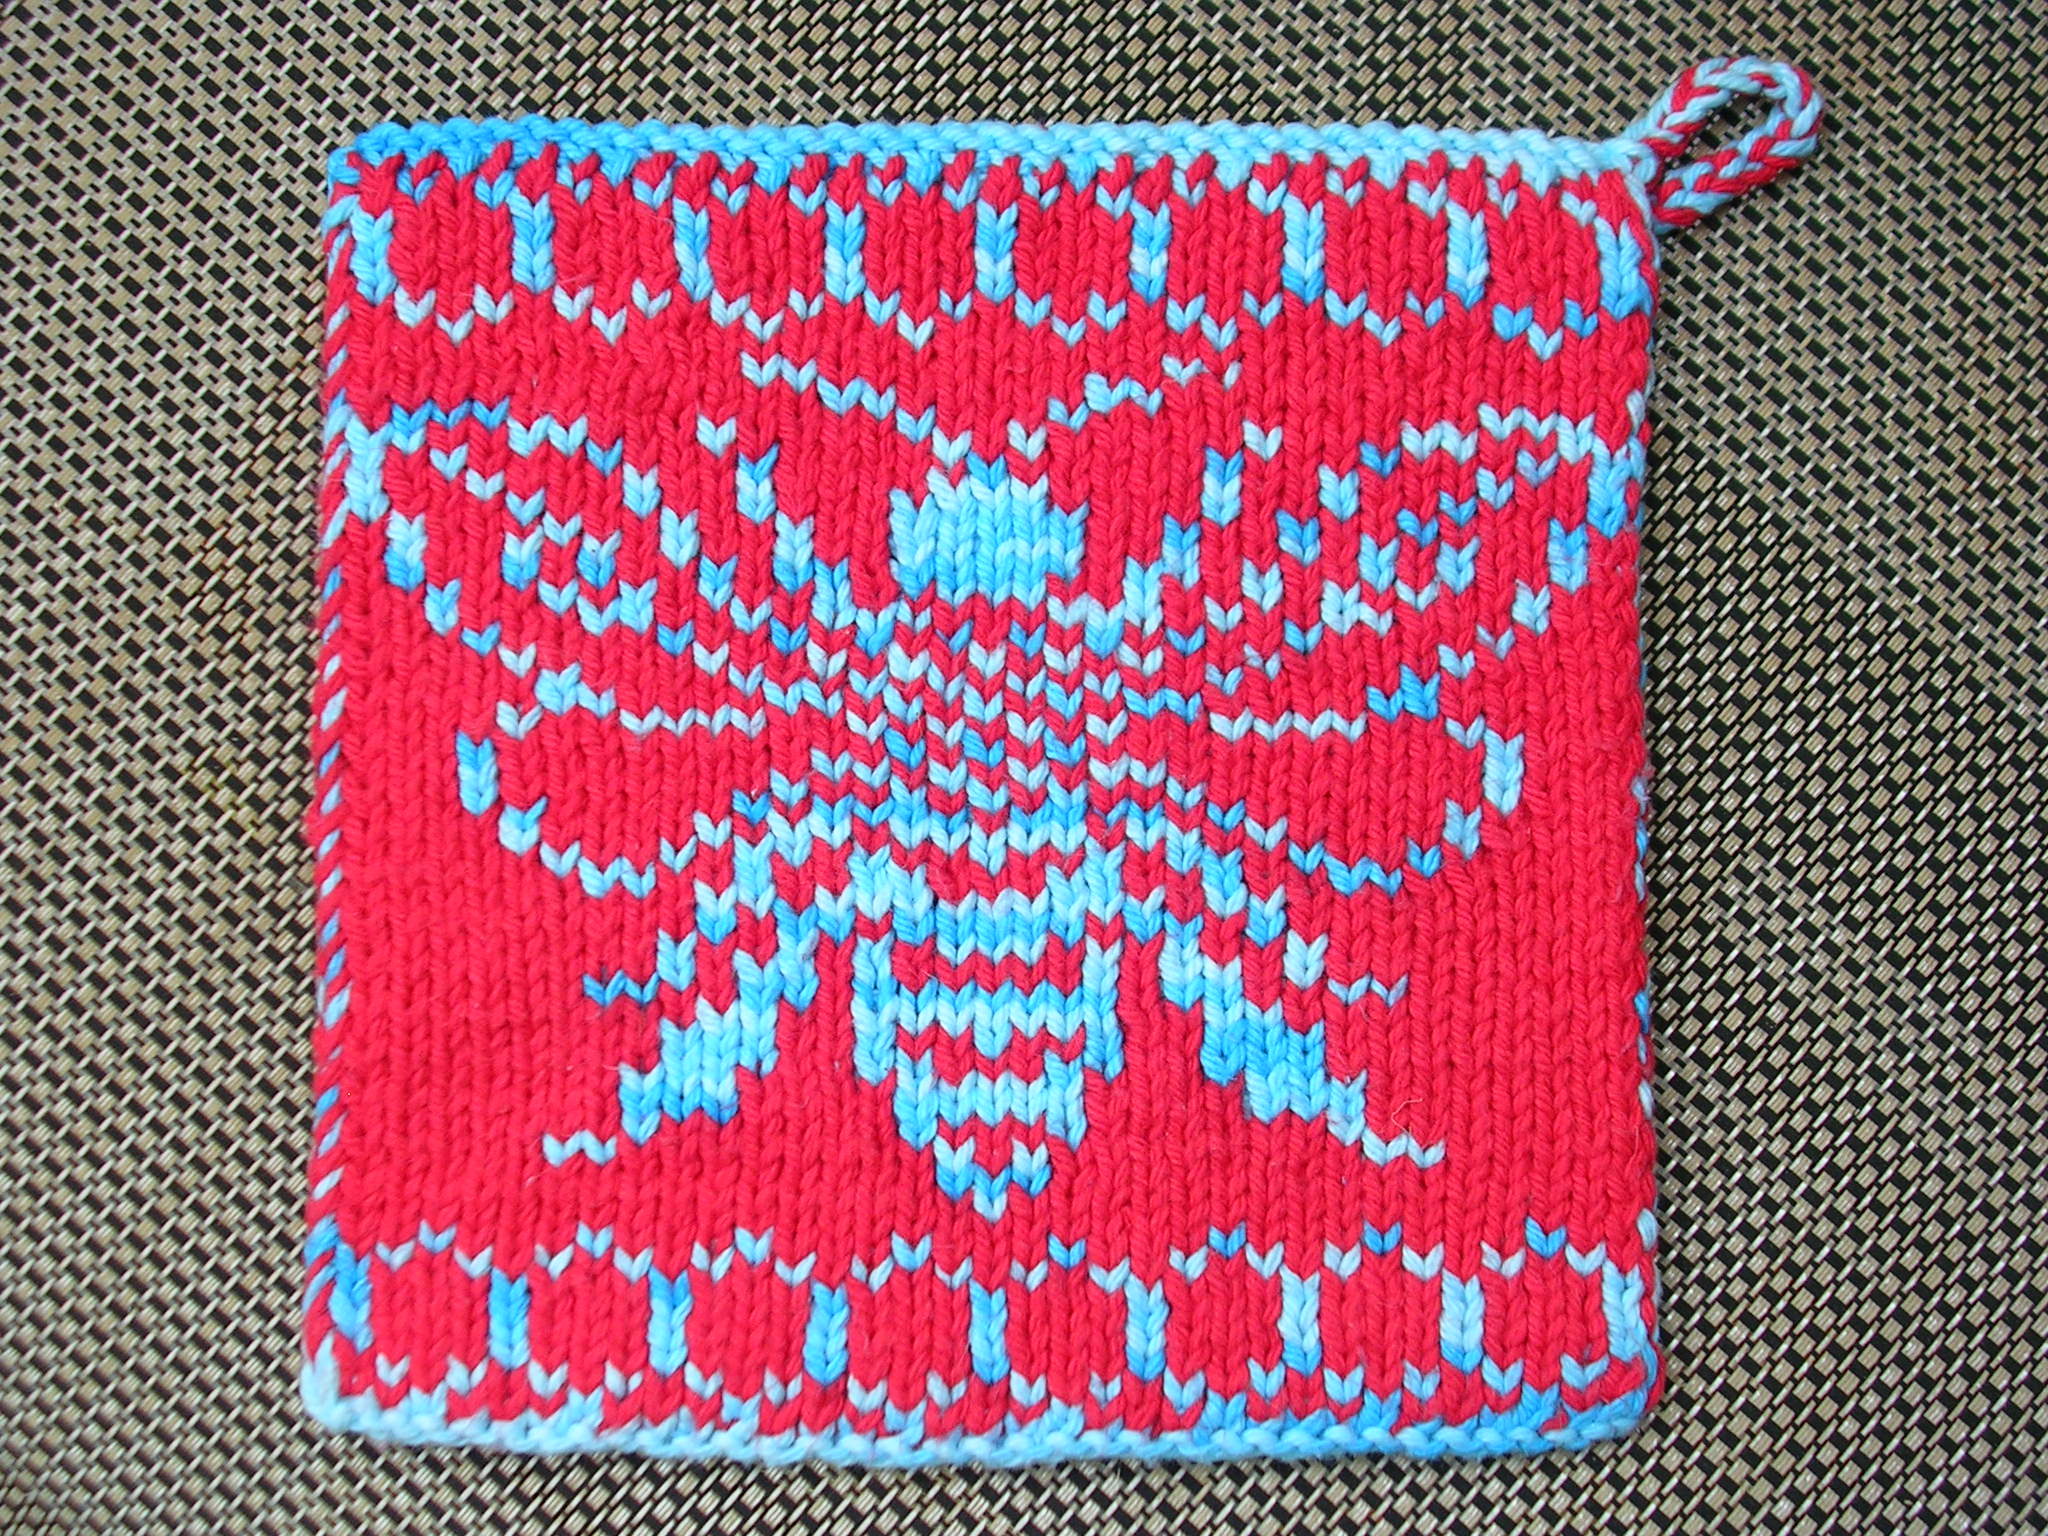 Beehive Knitting Wool Holder : Bee hive pot holder sg creations